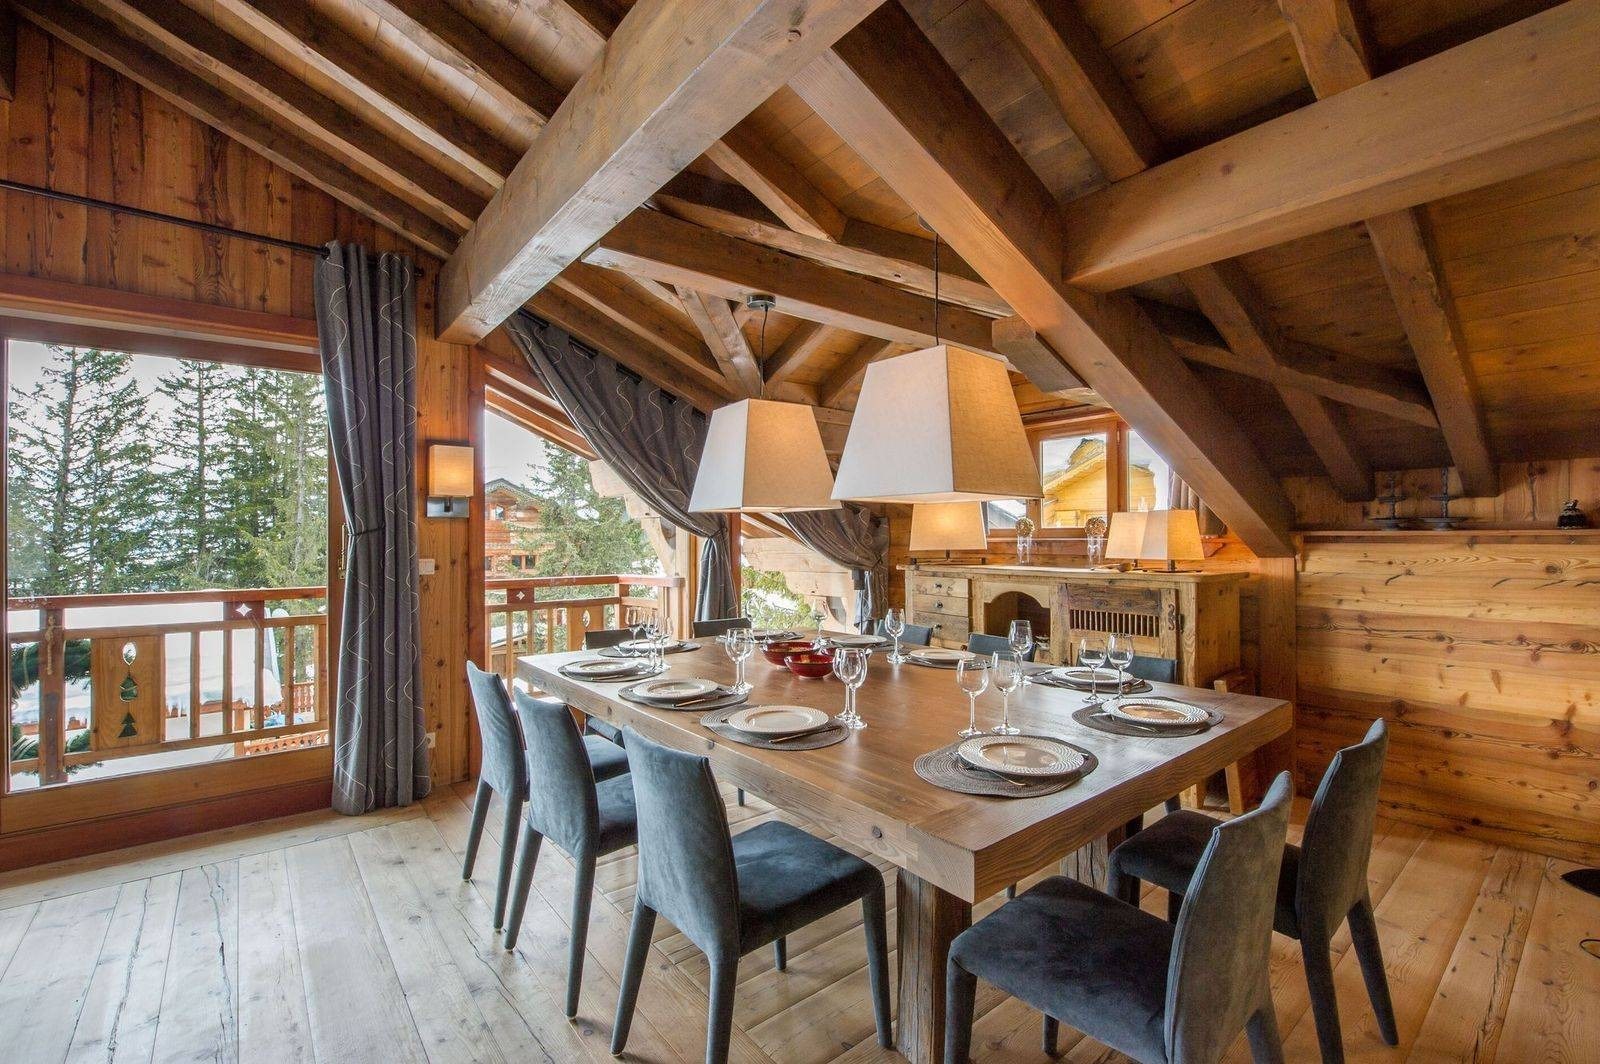 Courchevel 1850 Location Chalet Luxe Tancoite Salle A Manger